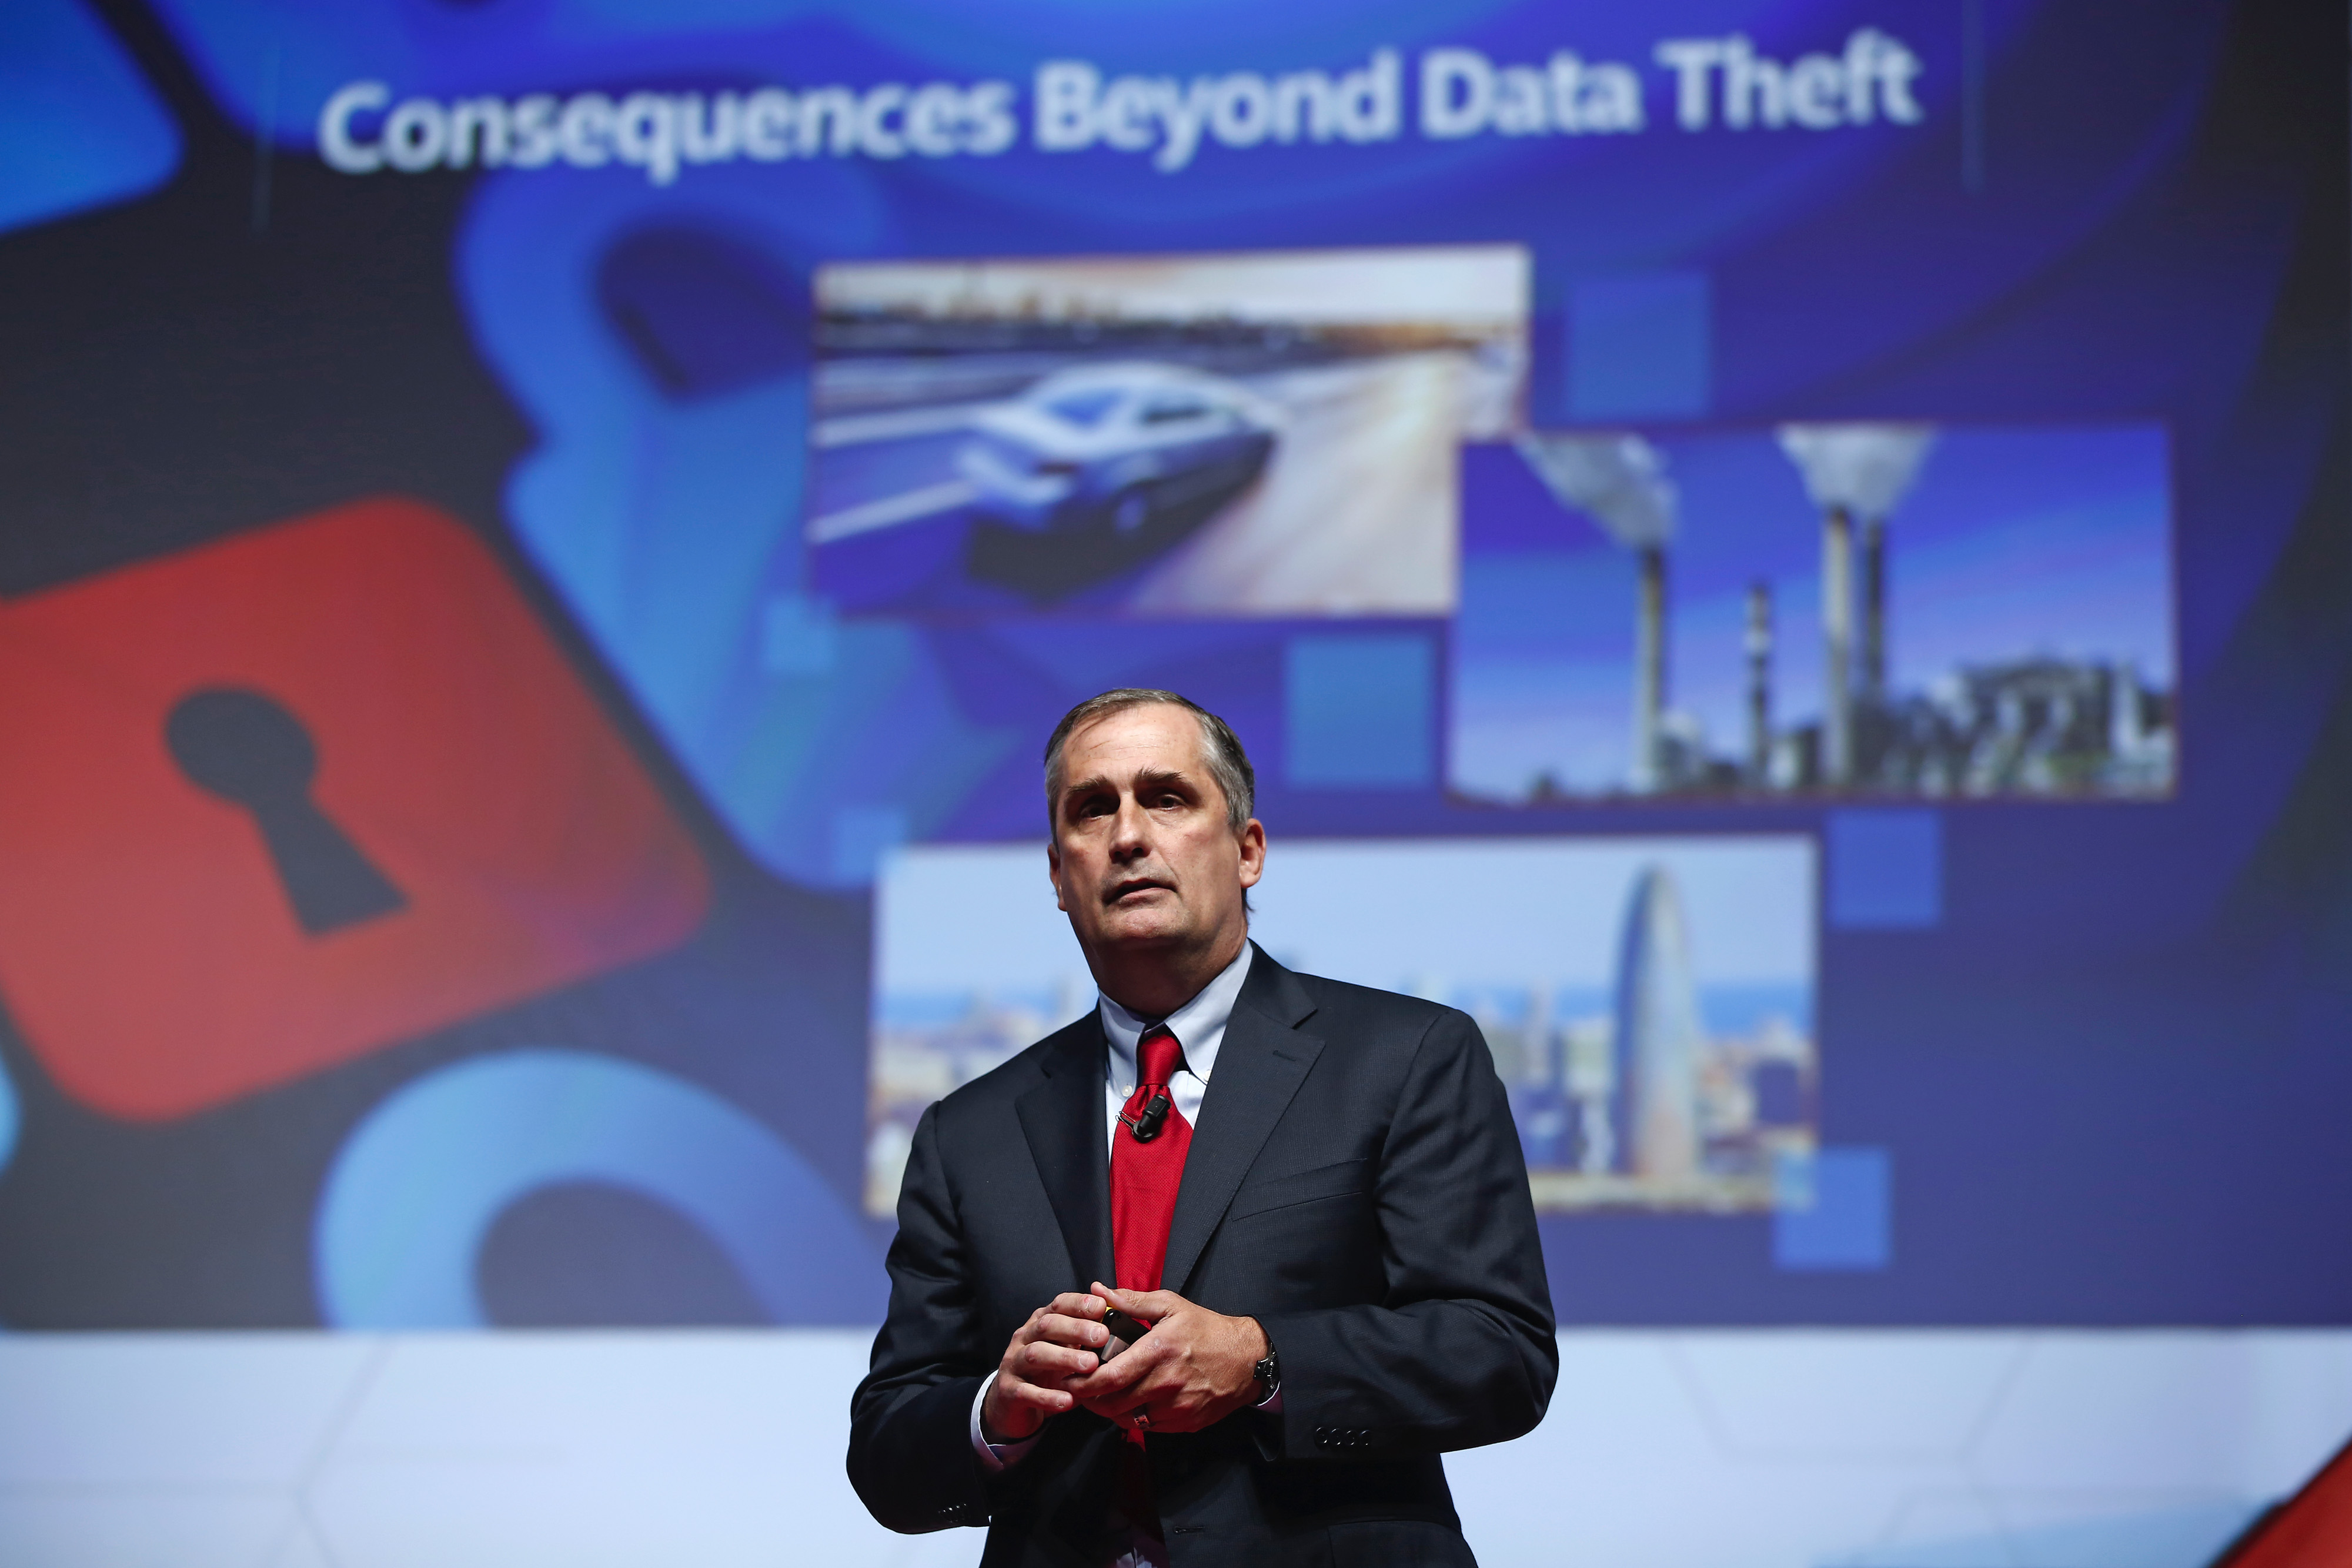 Brian Krzanich, chief executive officer of Intel Corp., speaks during a keynote session at the Mobile World Congress in Barcelona, Spain, on Wednesday, March 4, 2015. The event, which generates several hundred million euros in revenue for the city of Barcelona each year, also means the world for a week turns its attention back to Europe for the latest in technology, despite a lagging ecosystem. Photographer: Simon Dawson/Bloomberg *** Local Caption *** Brian Krzanich